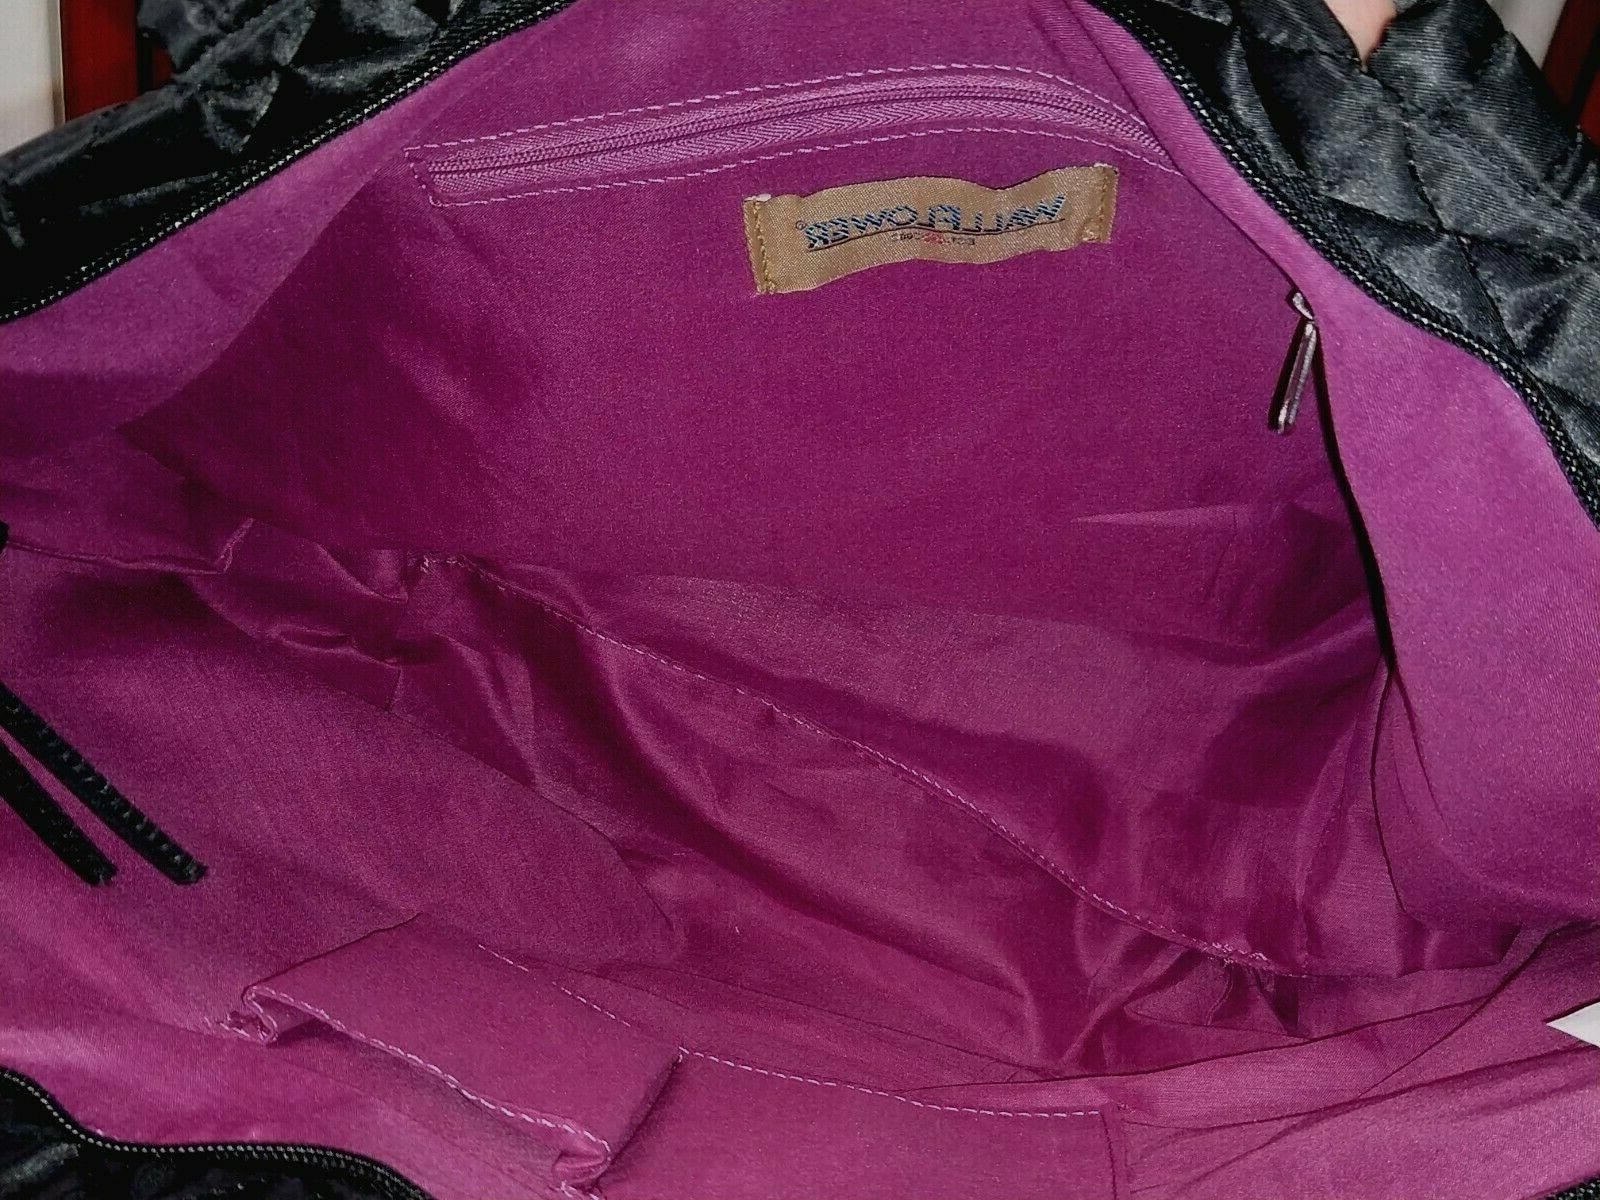 New NWT Purse Tote Quilted